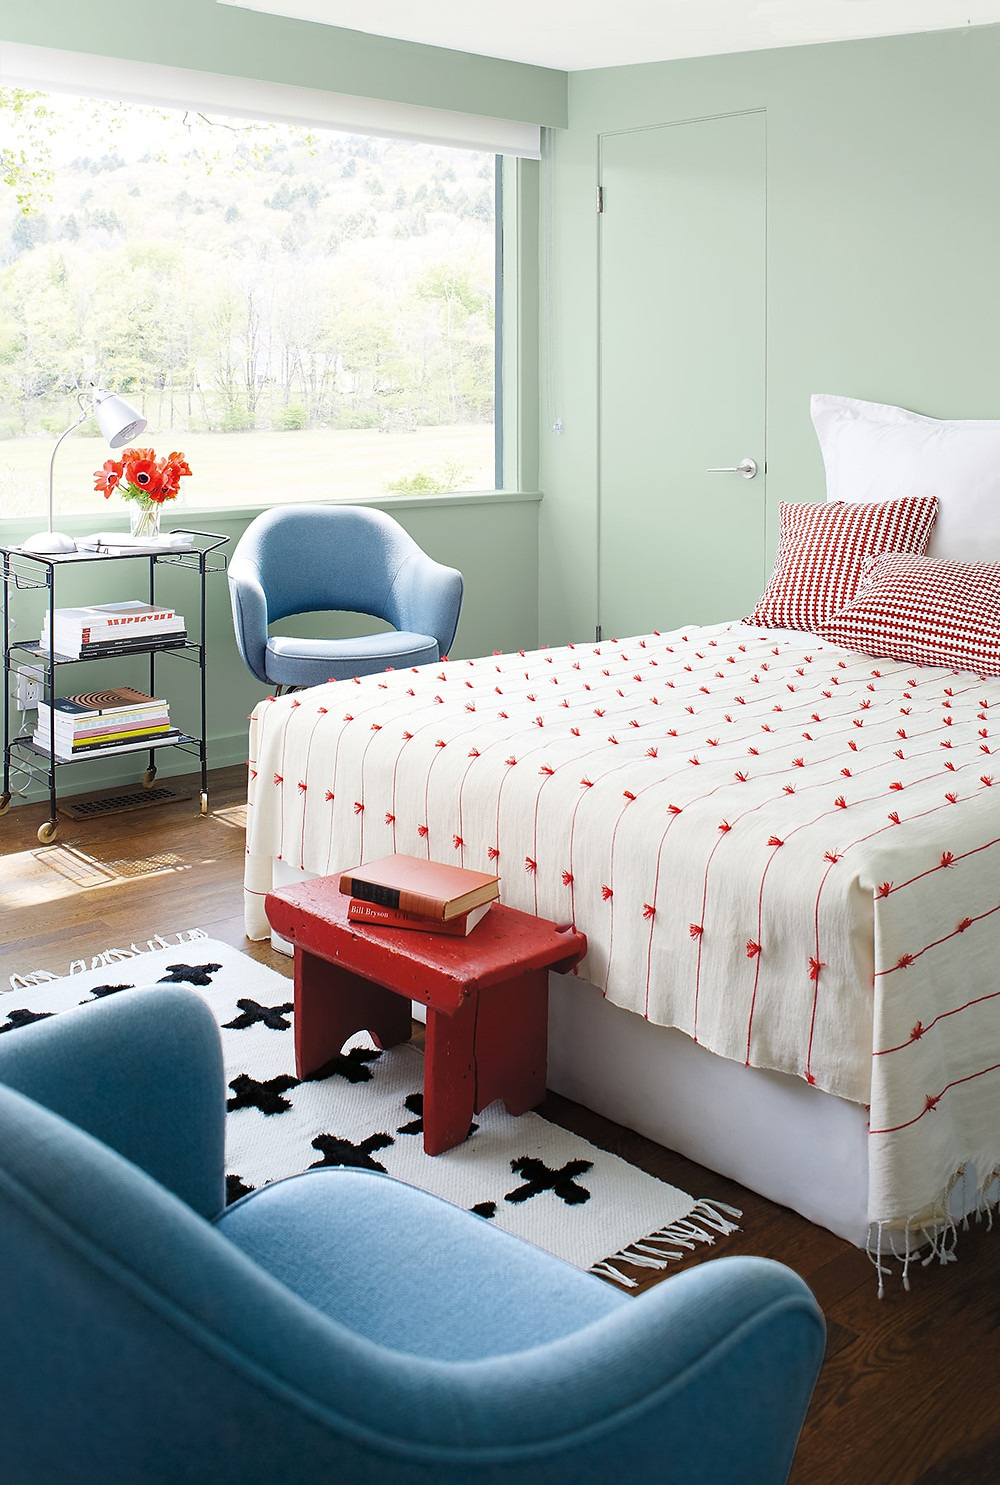 This is the perfect setting for a guest bedroom, with a lovely red white throw on the bed and mint green or sage walls. Mid century feels, loving it.